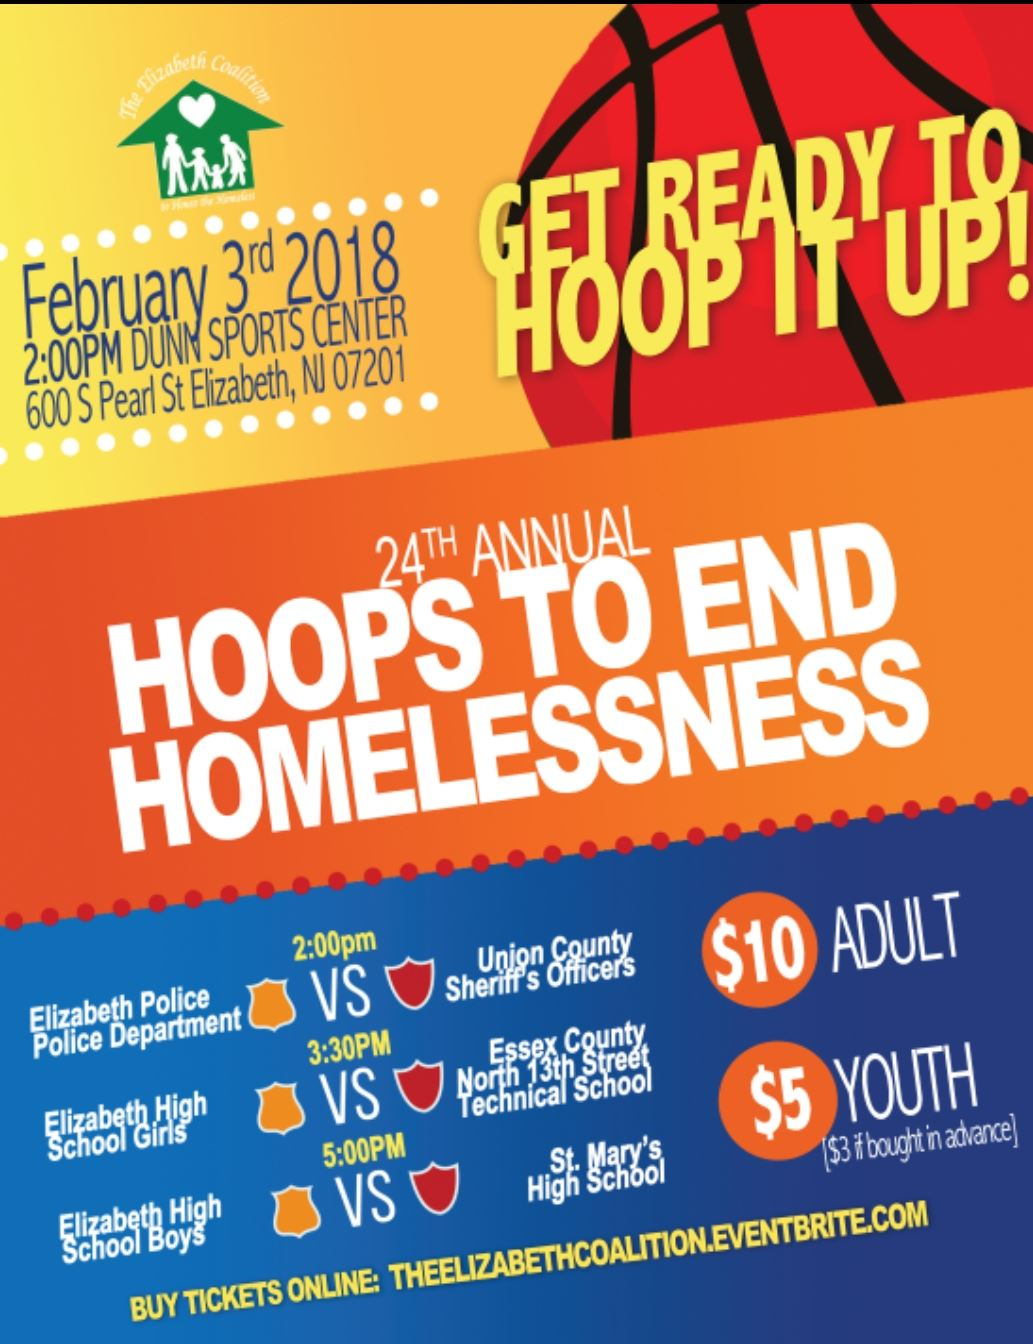 24th Annual Hoops to End Homelessness